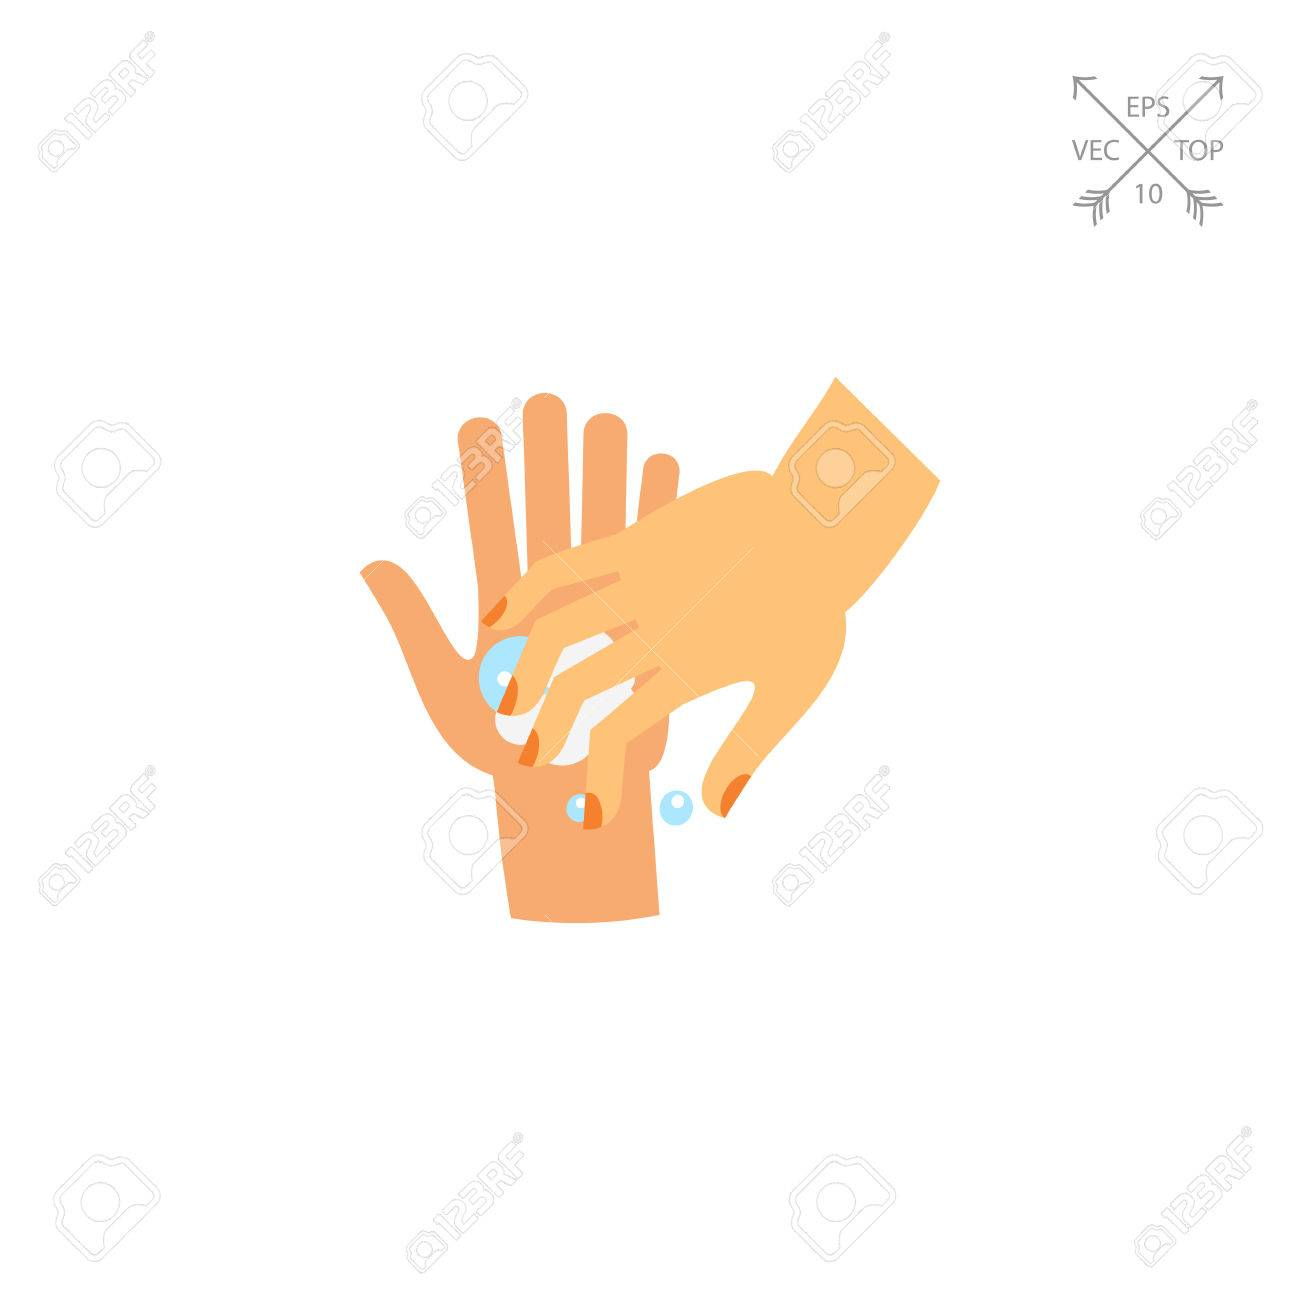 Washing Fingernails Icon Royalty Free Cliparts, Vectors, And Stock ...